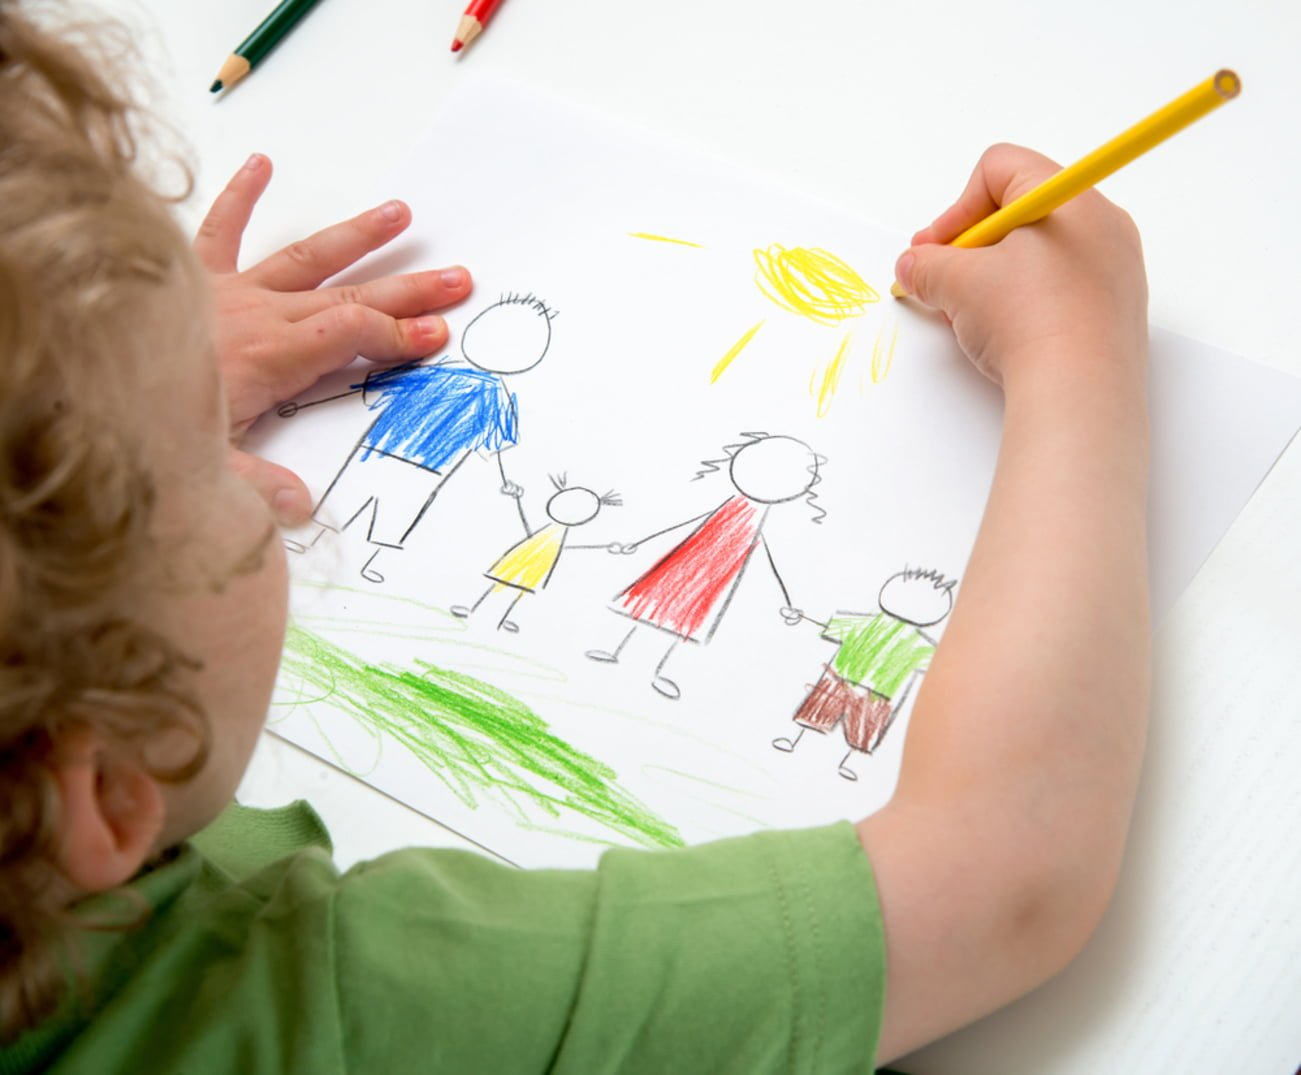 Uncategorized Child Drawing i cant draw how do help my child make lovely pictures whirligig toys